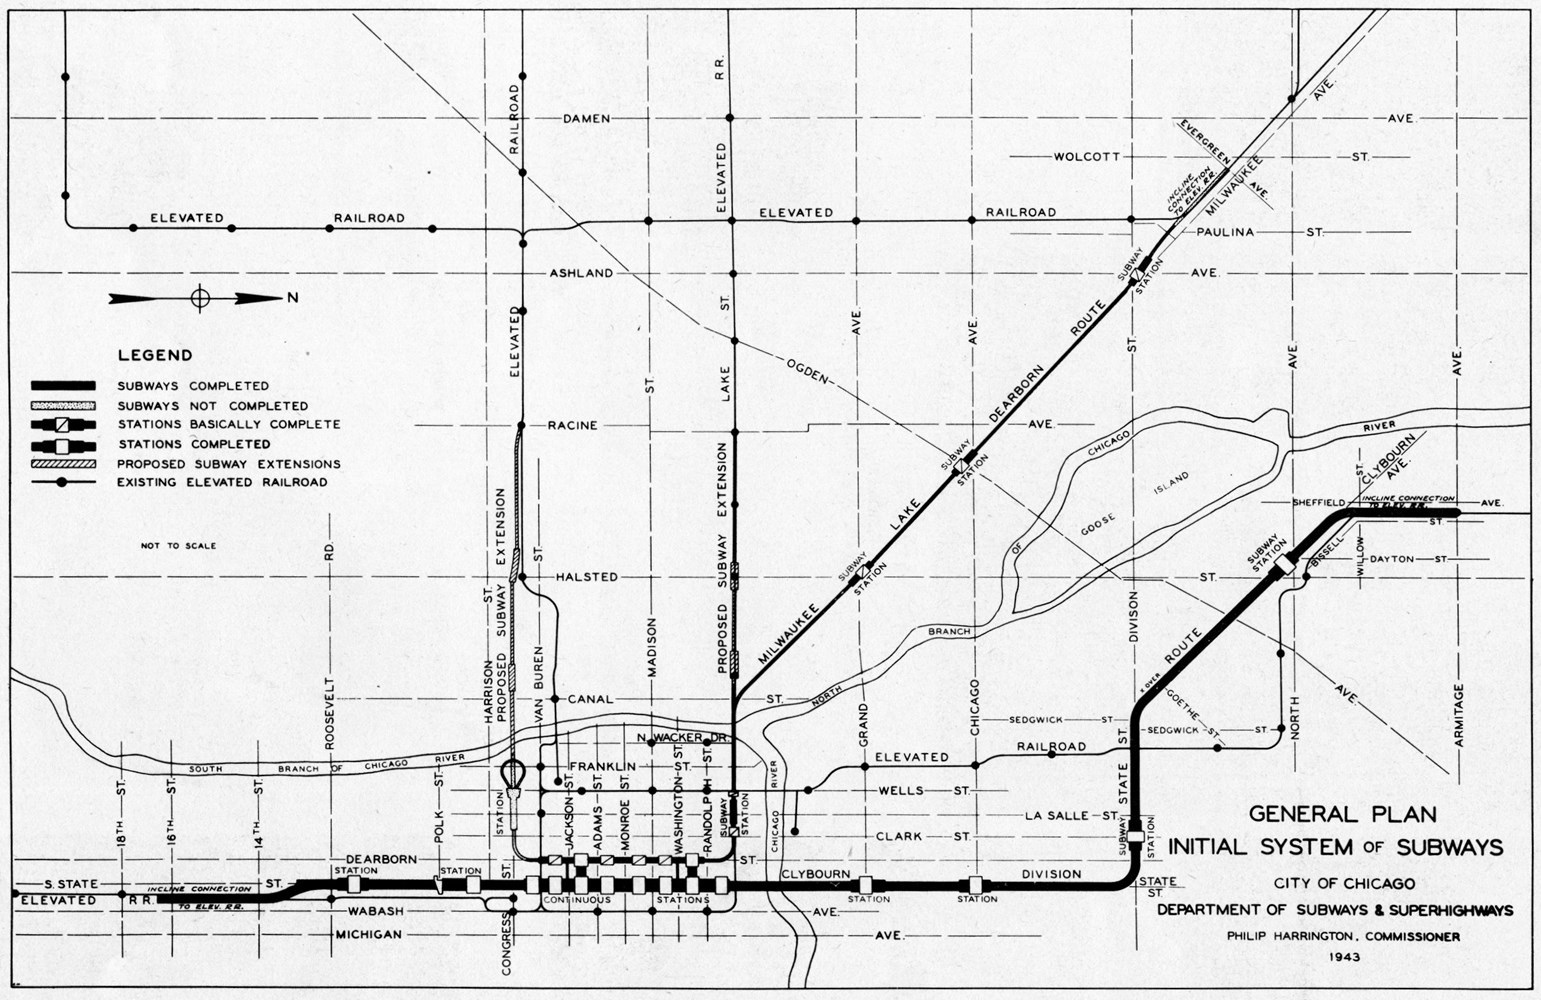 Map of Initial System of Subways